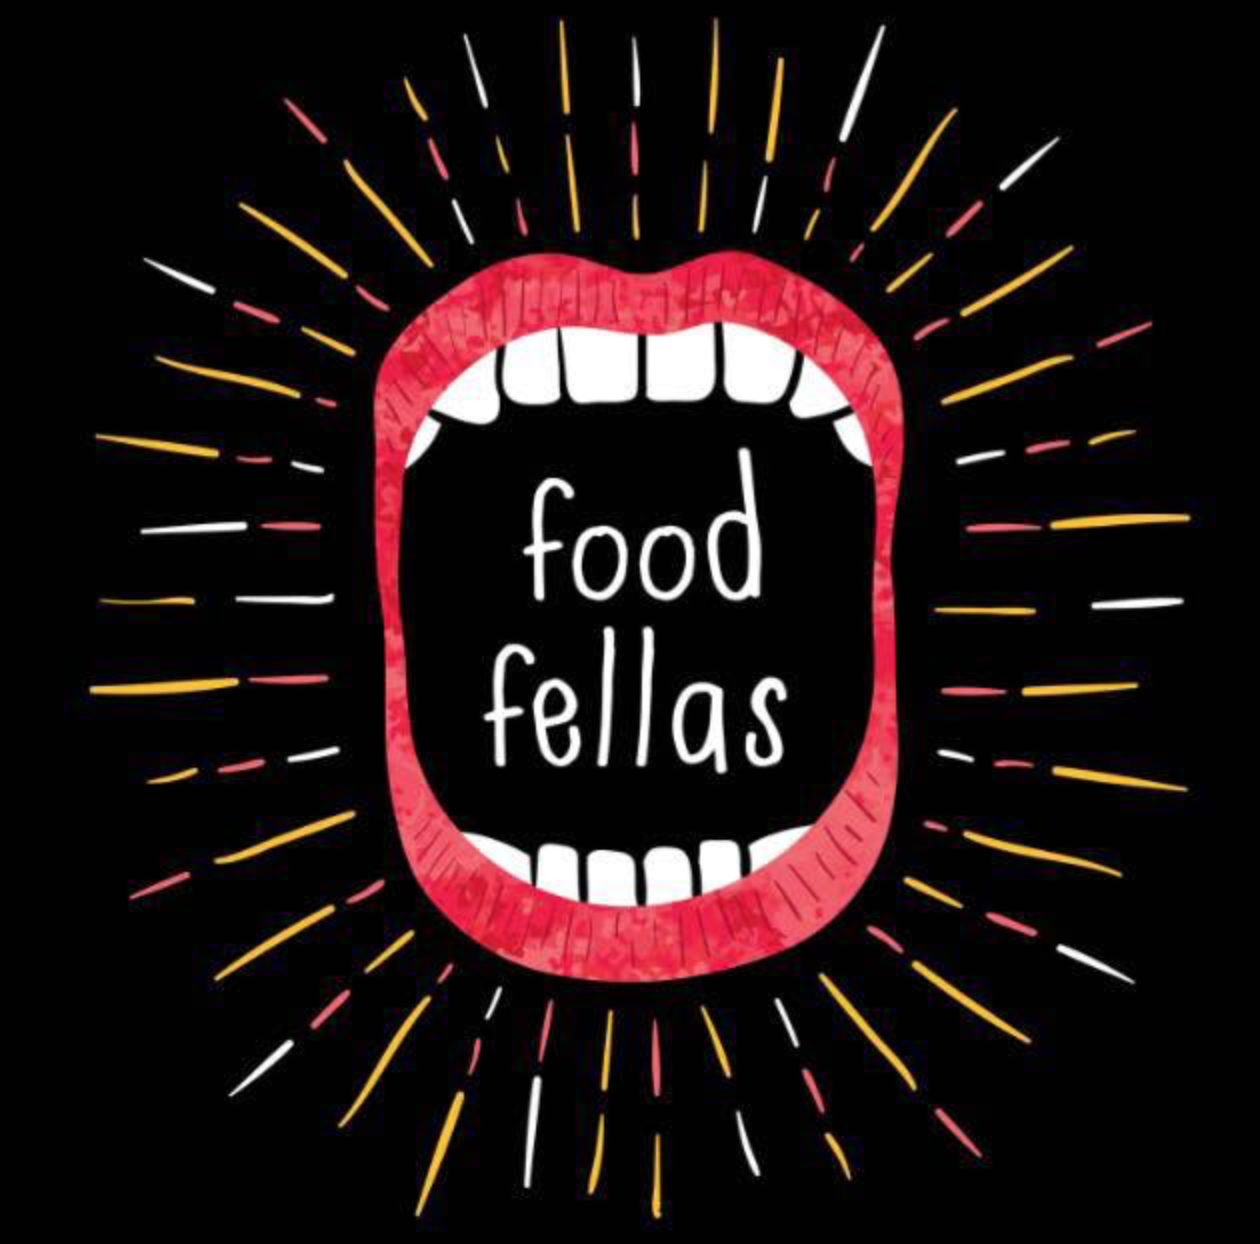 FOOD FELLAS -  Food Fellas strives to bring a Cultural Street Fusion with a demand for flavor and texture complexity which results in Amplified Flavor and craveability.